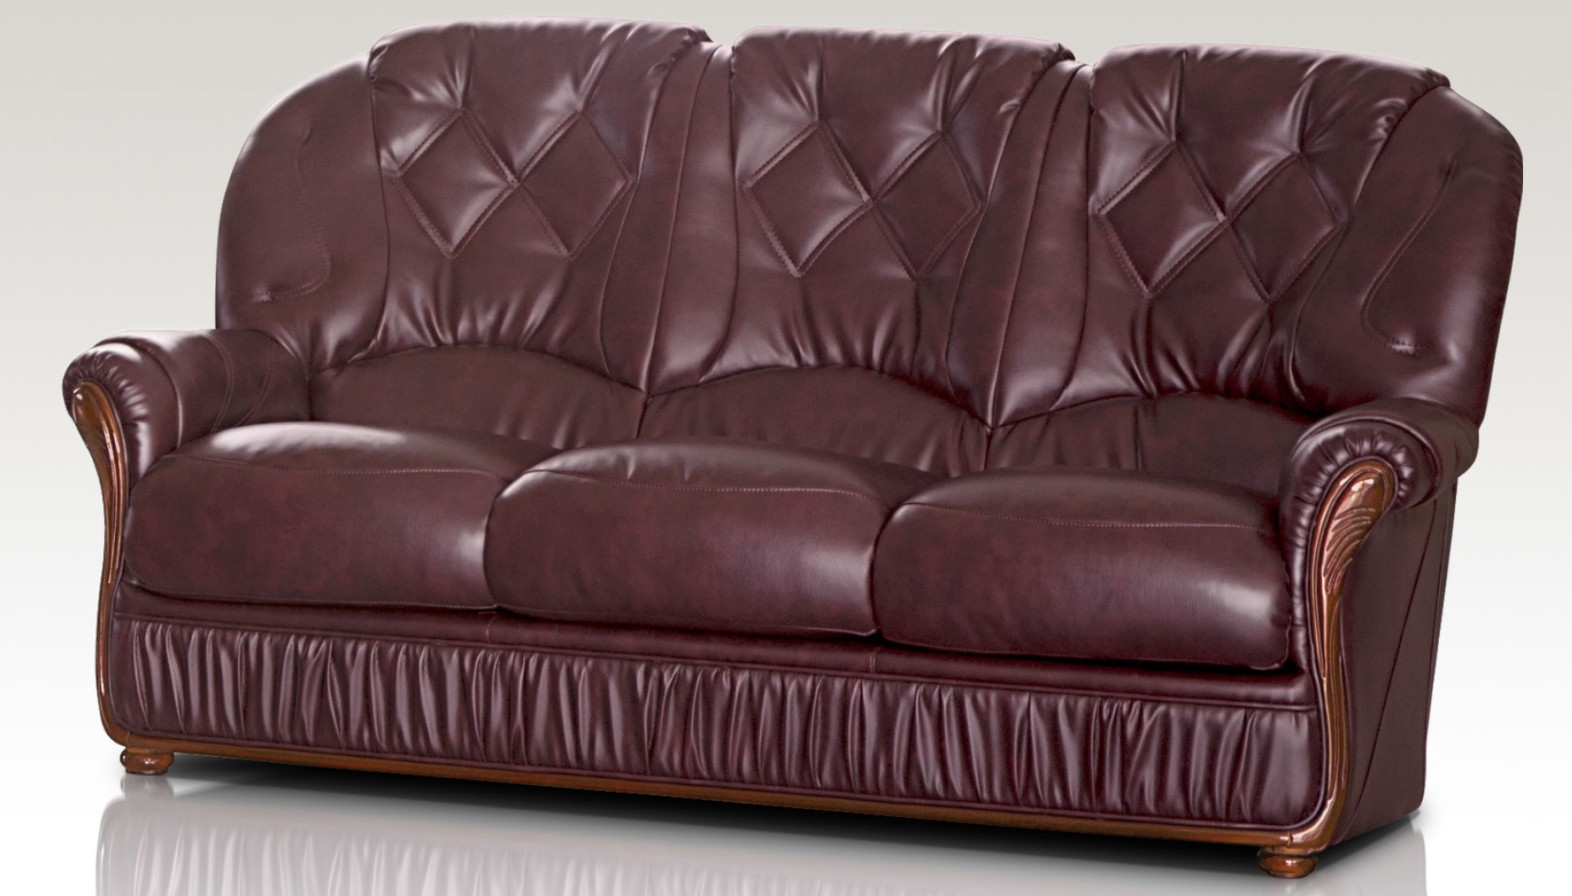 Awesome Alabama Genuine Italian Leather 3 Seater Sofa Settee Burgundy Machost Co Dining Chair Design Ideas Machostcouk